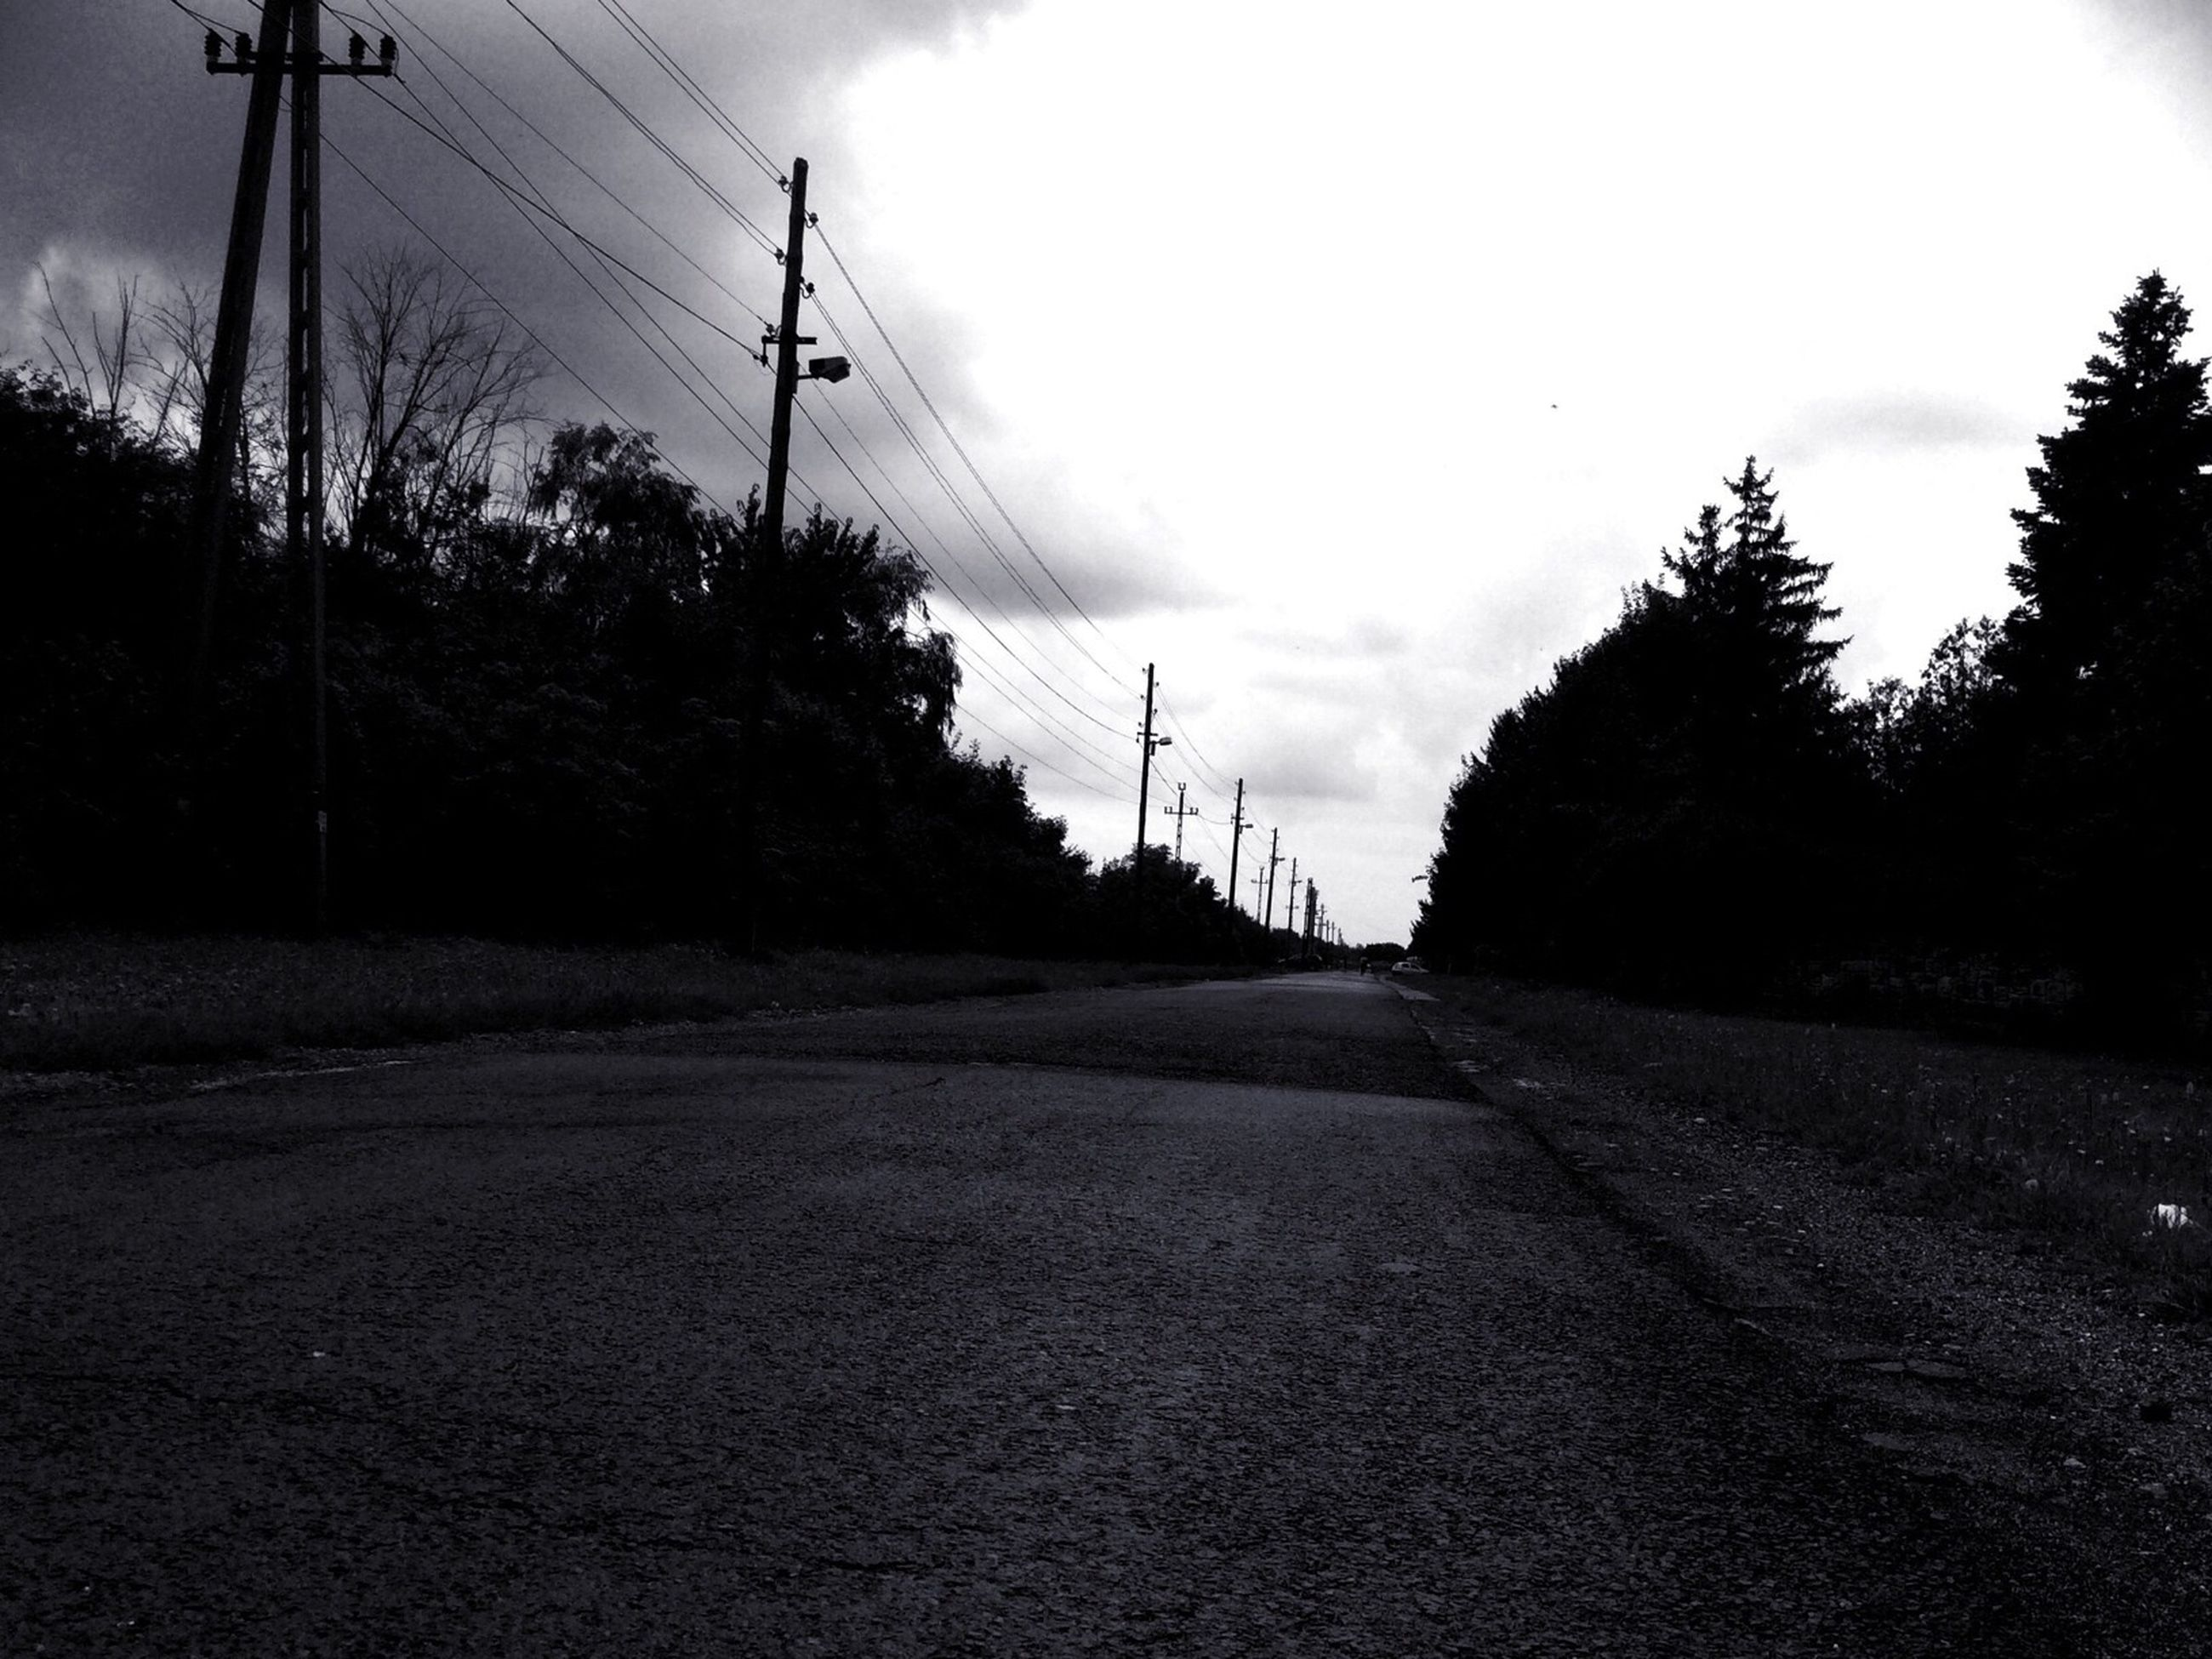 electricity pylon, the way forward, power line, transportation, sky, tree, silhouette, connection, road, electricity, power supply, tranquility, cable, tranquil scene, street, nature, vanishing point, sunset, diminishing perspective, outdoors